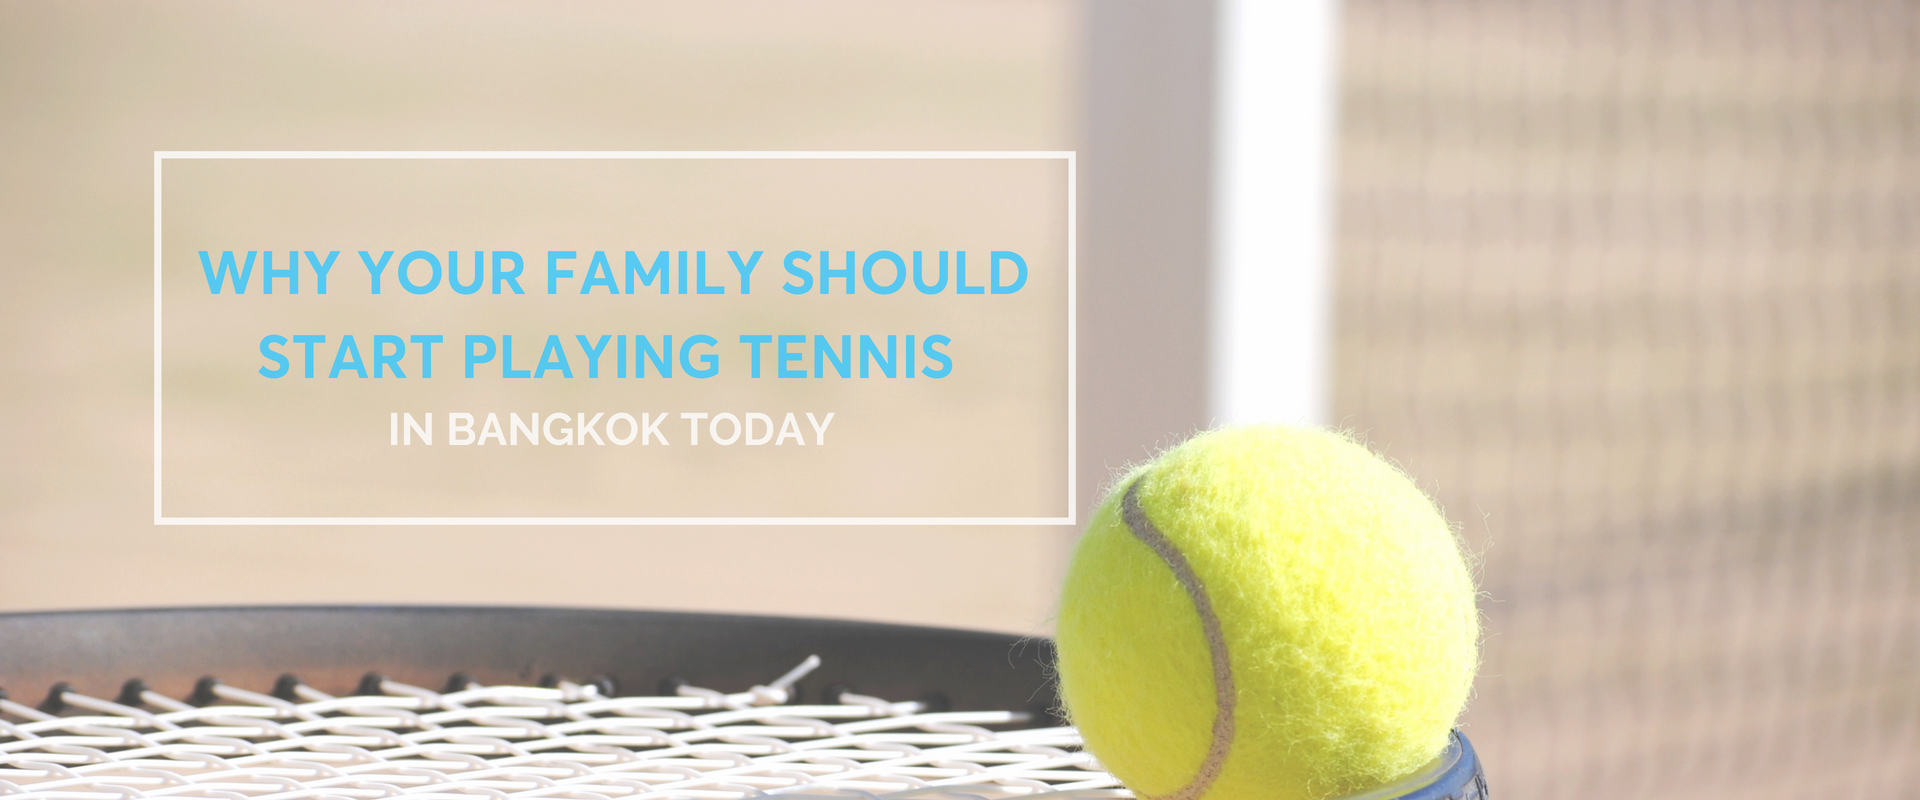 Why Your Family Should Start Playing Tennis in Bangkok Today